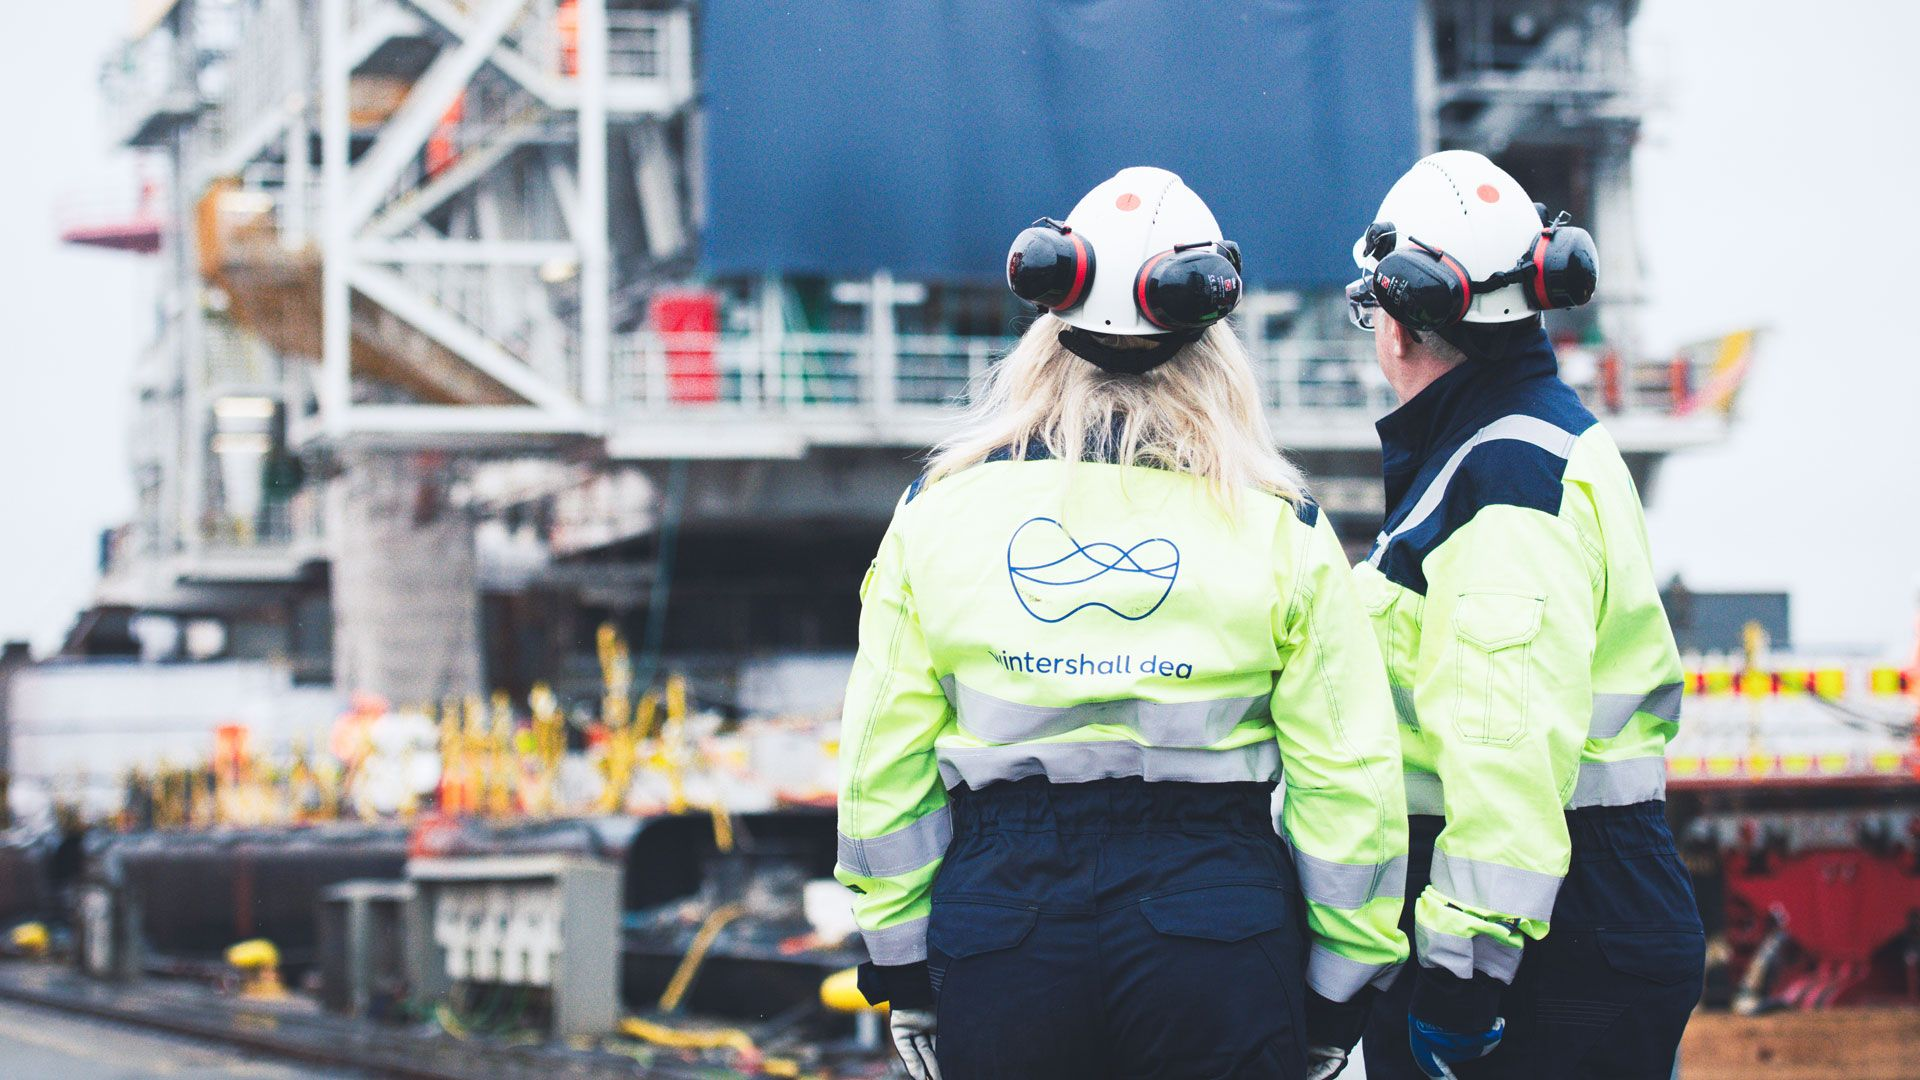 Wintershall Dea Q3 Results